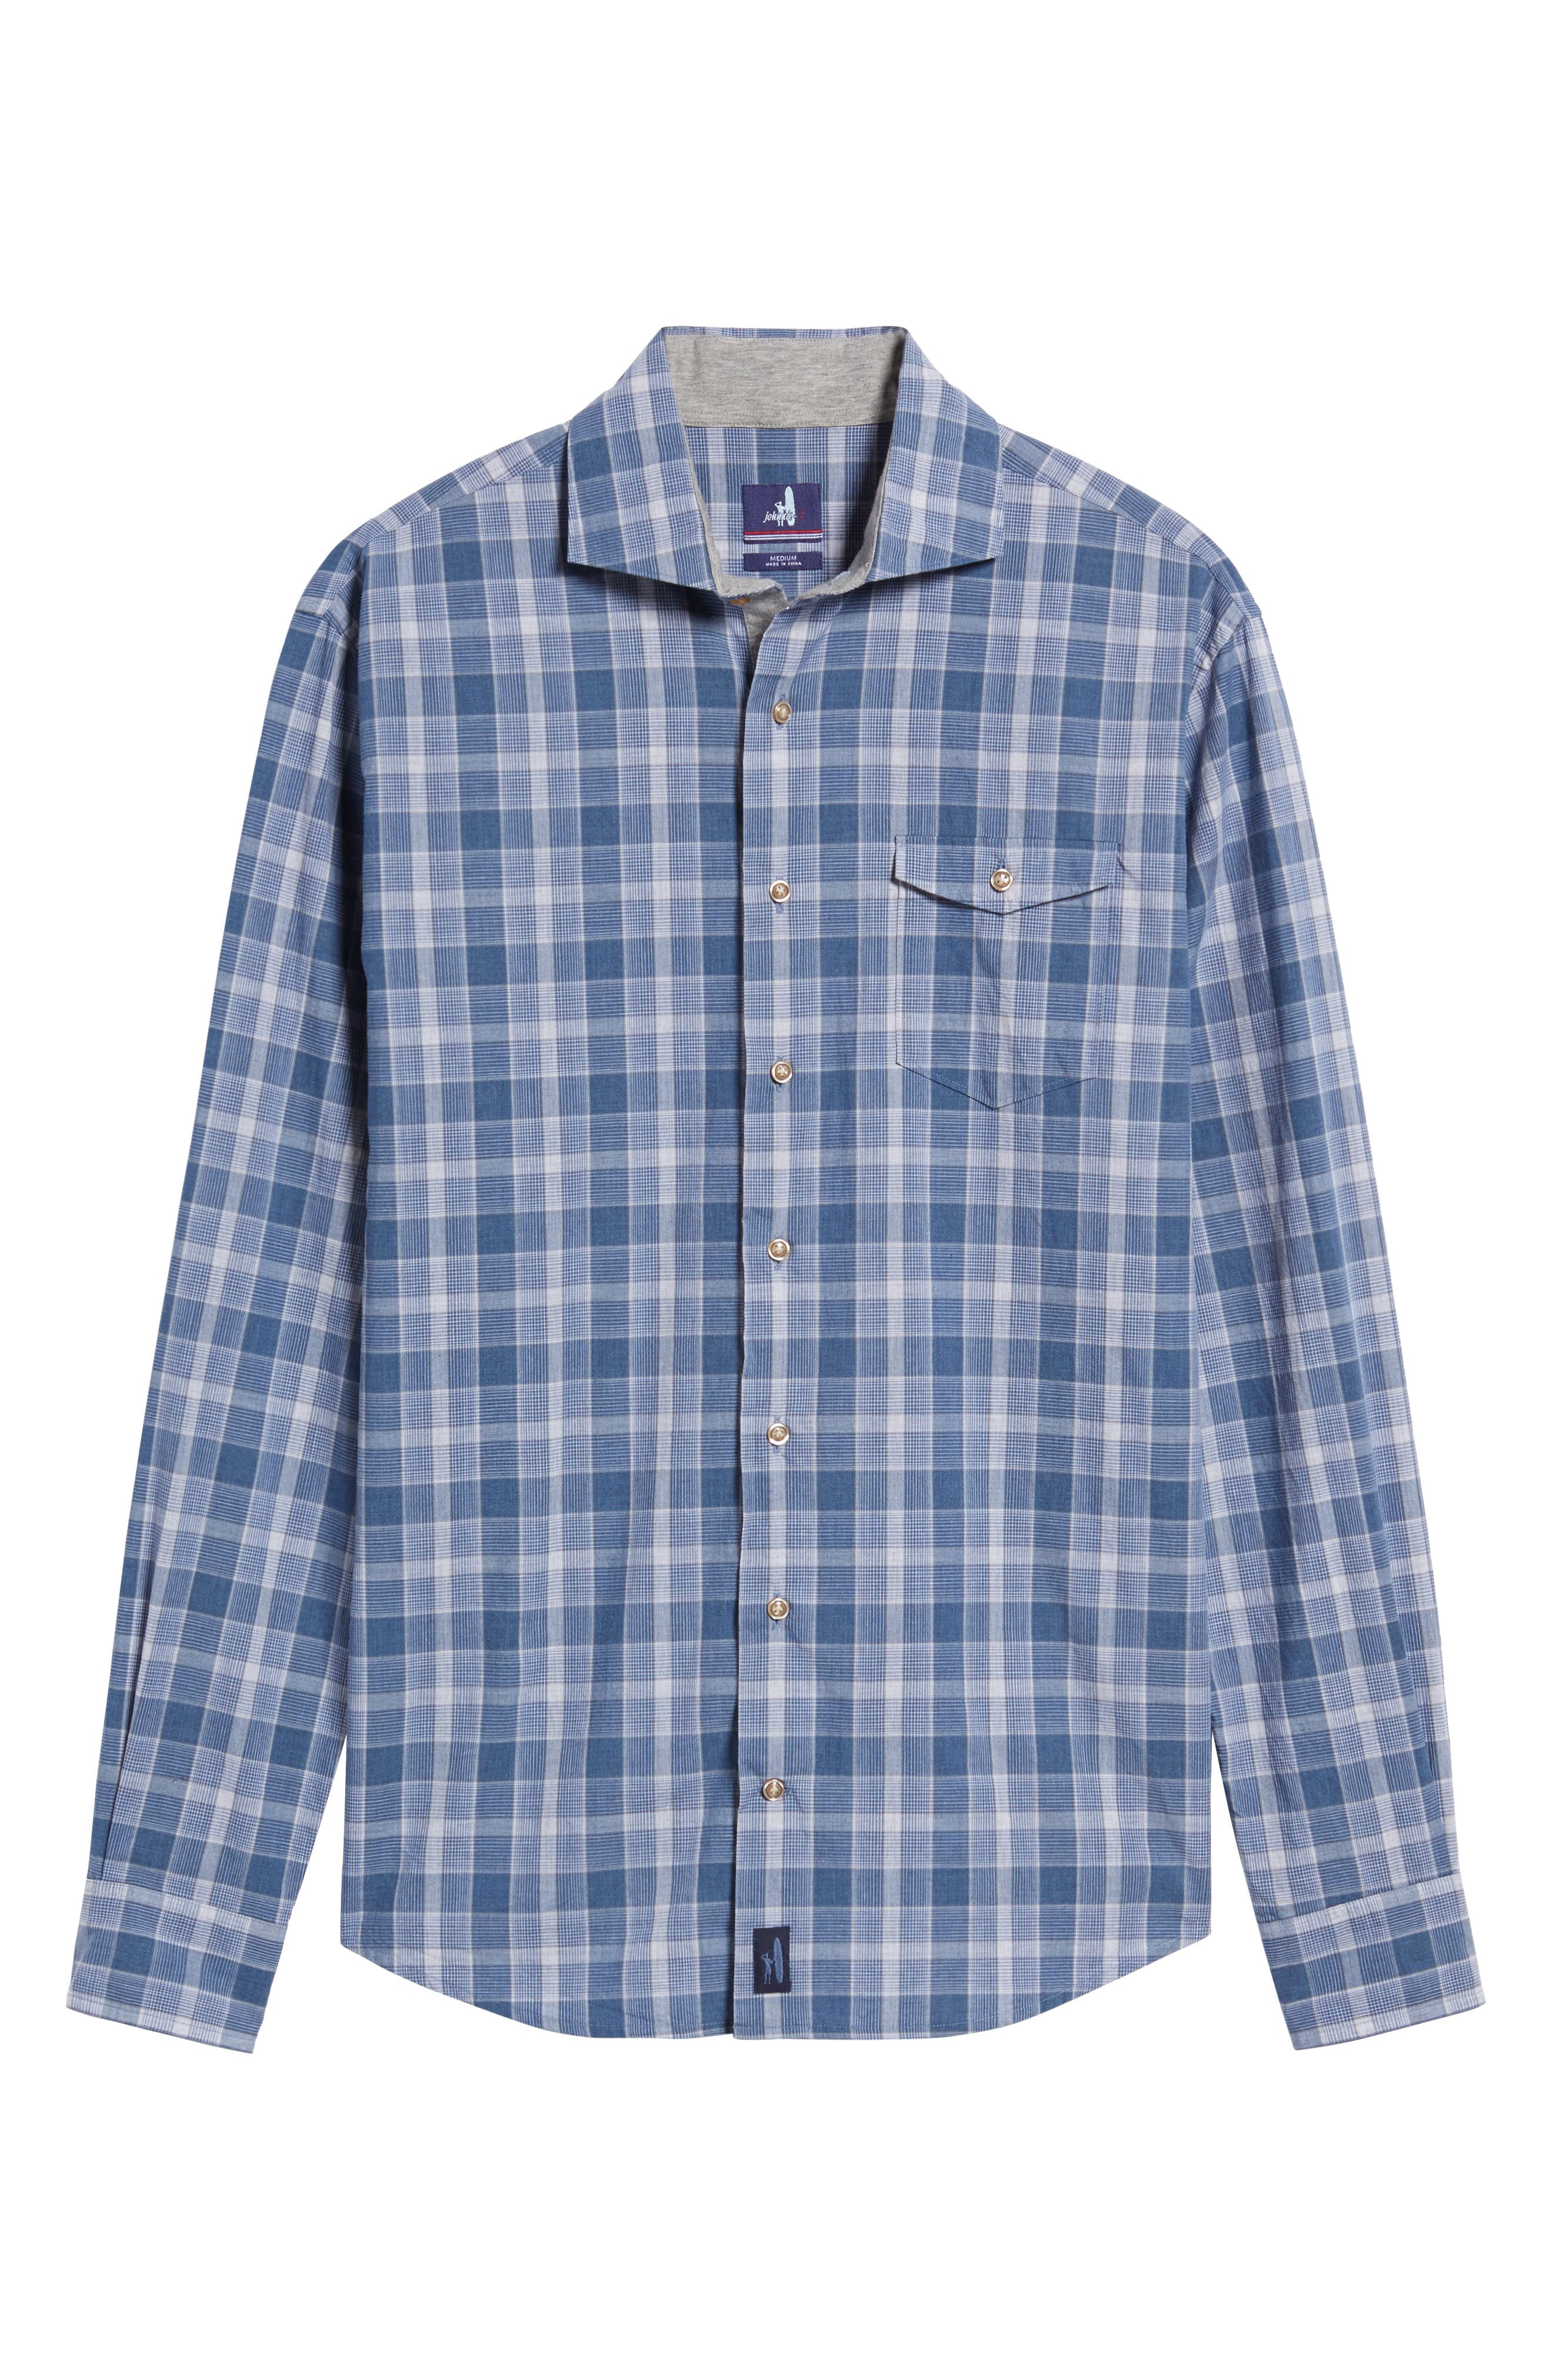 Highlands Classic Fit Plaid Sport Shirt,                             Alternate thumbnail 6, color,                             464